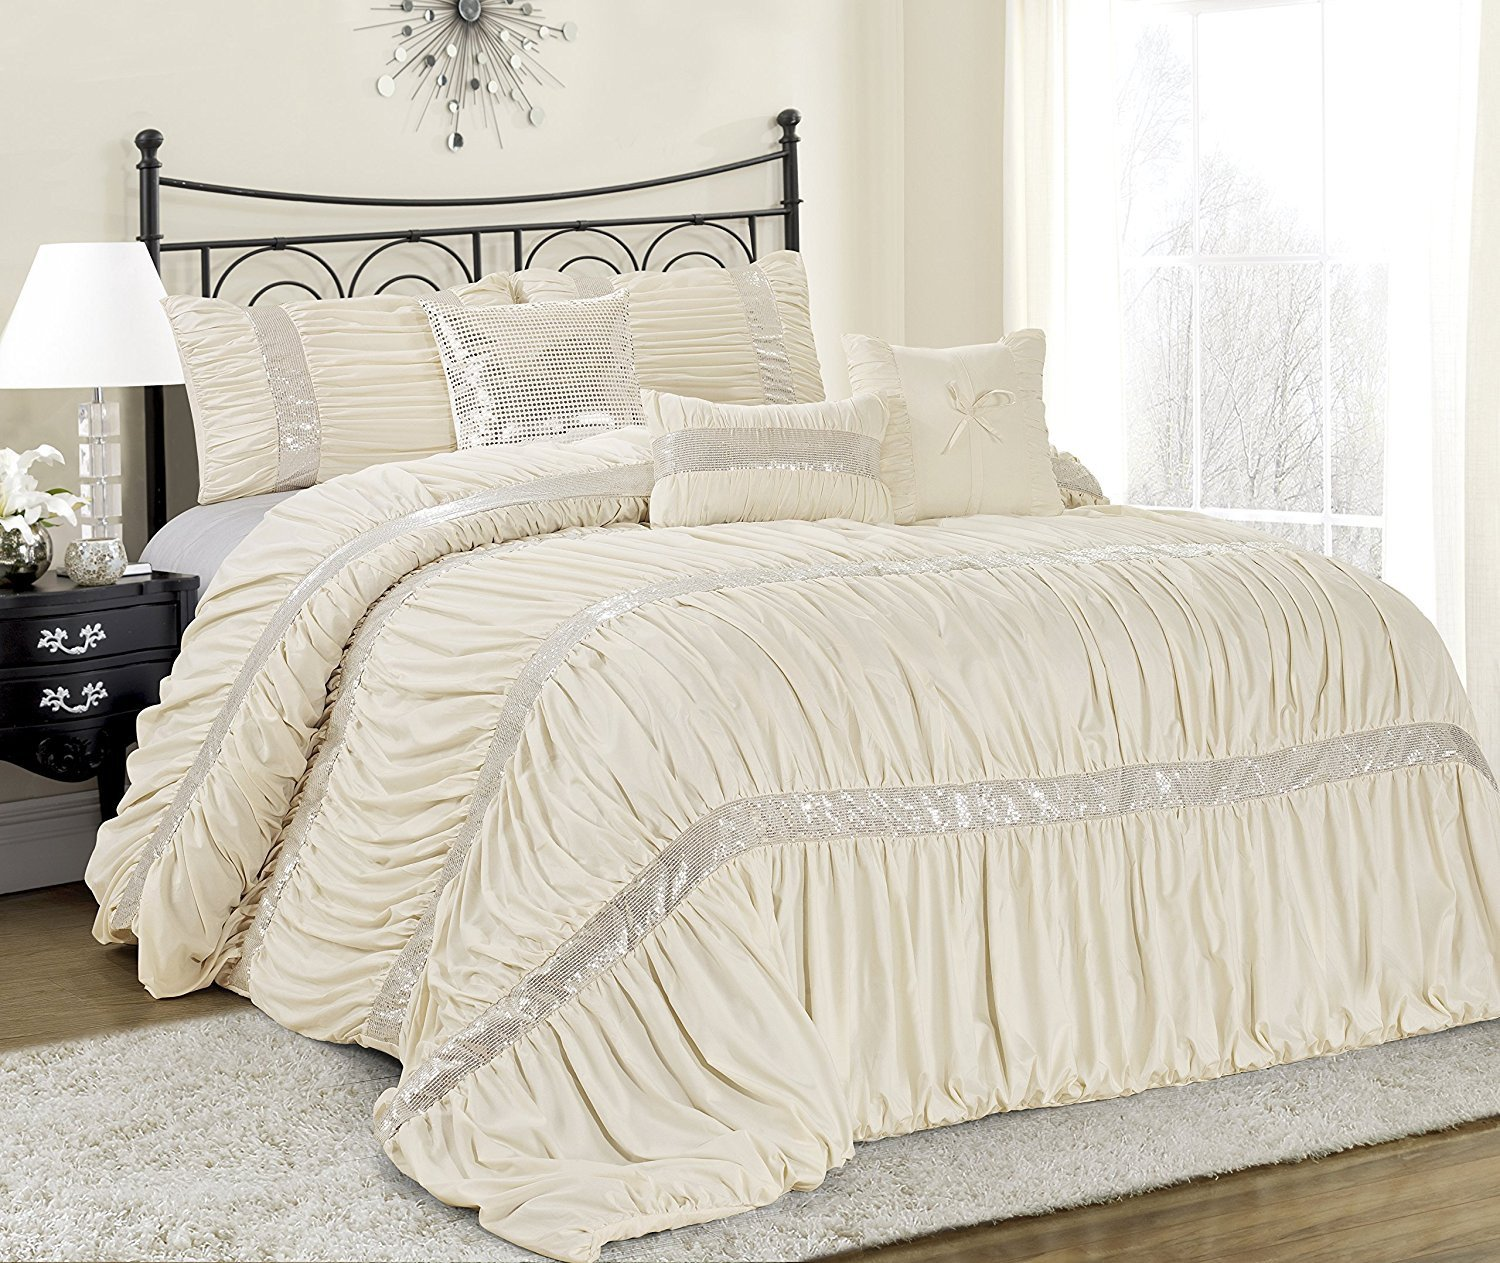 comforter king lodge set fascinating ivory and curtain ecrins